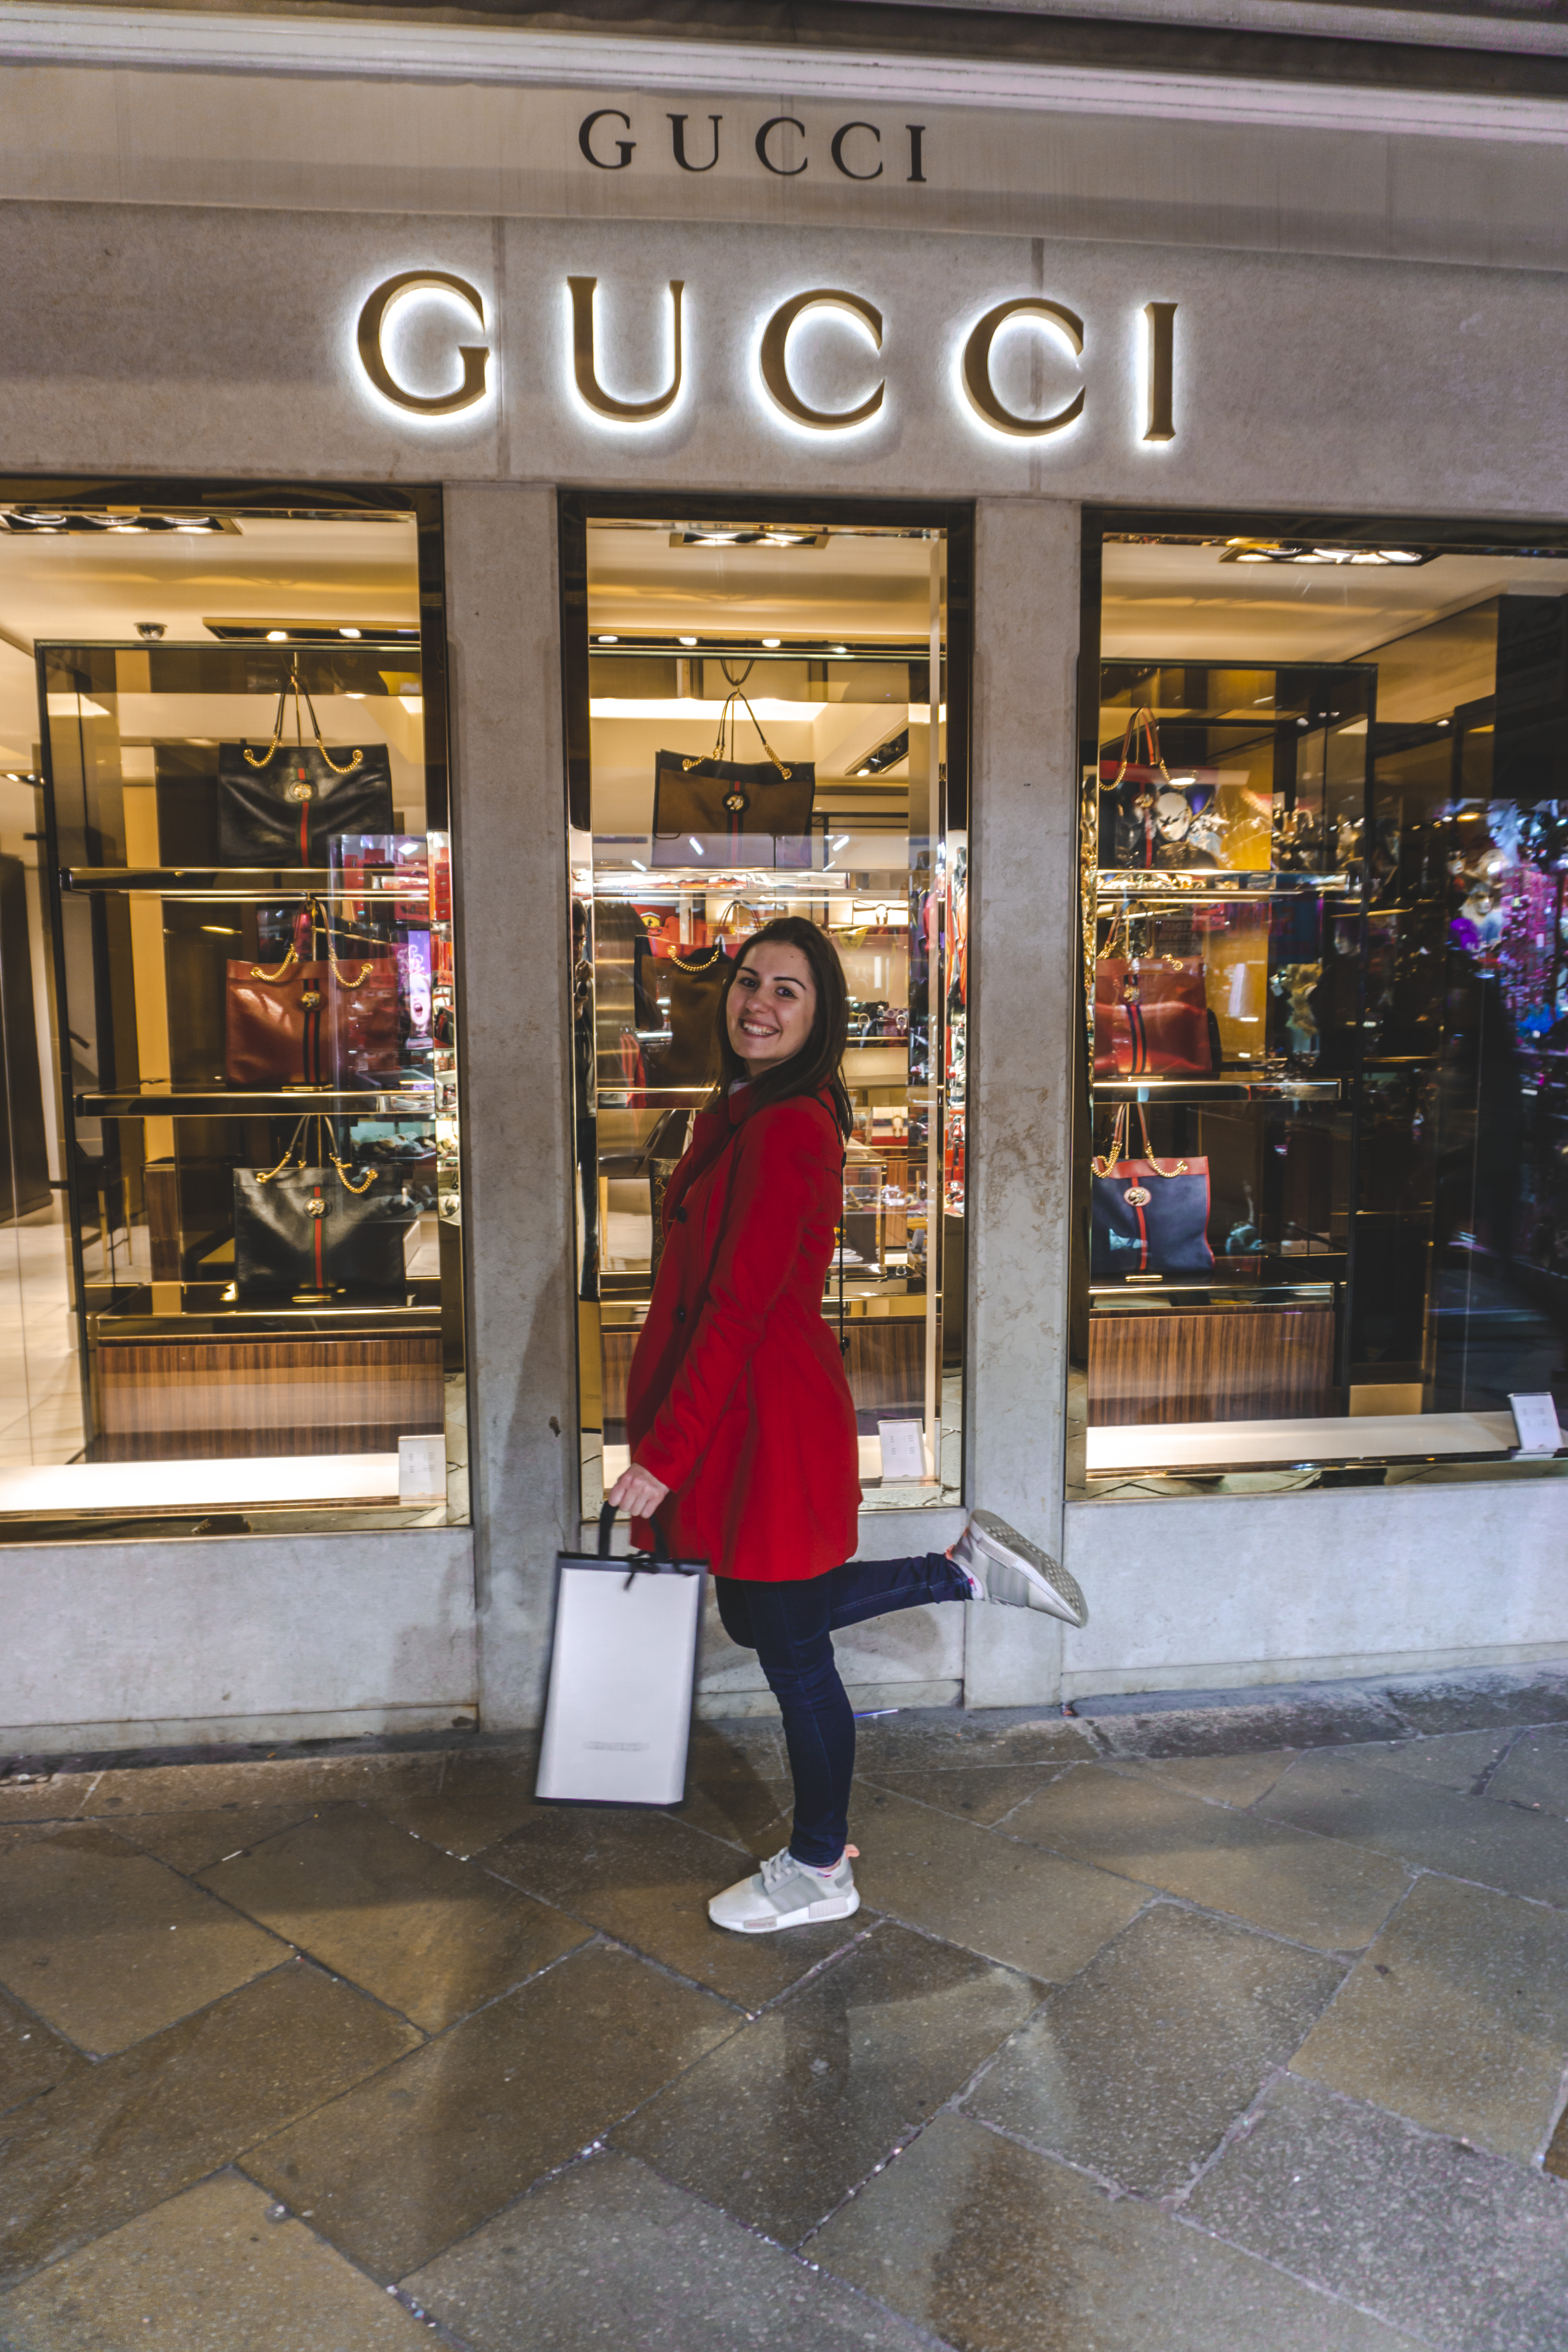 Girl in the red coat smiling after shopping in Gucci and holding a white bag.